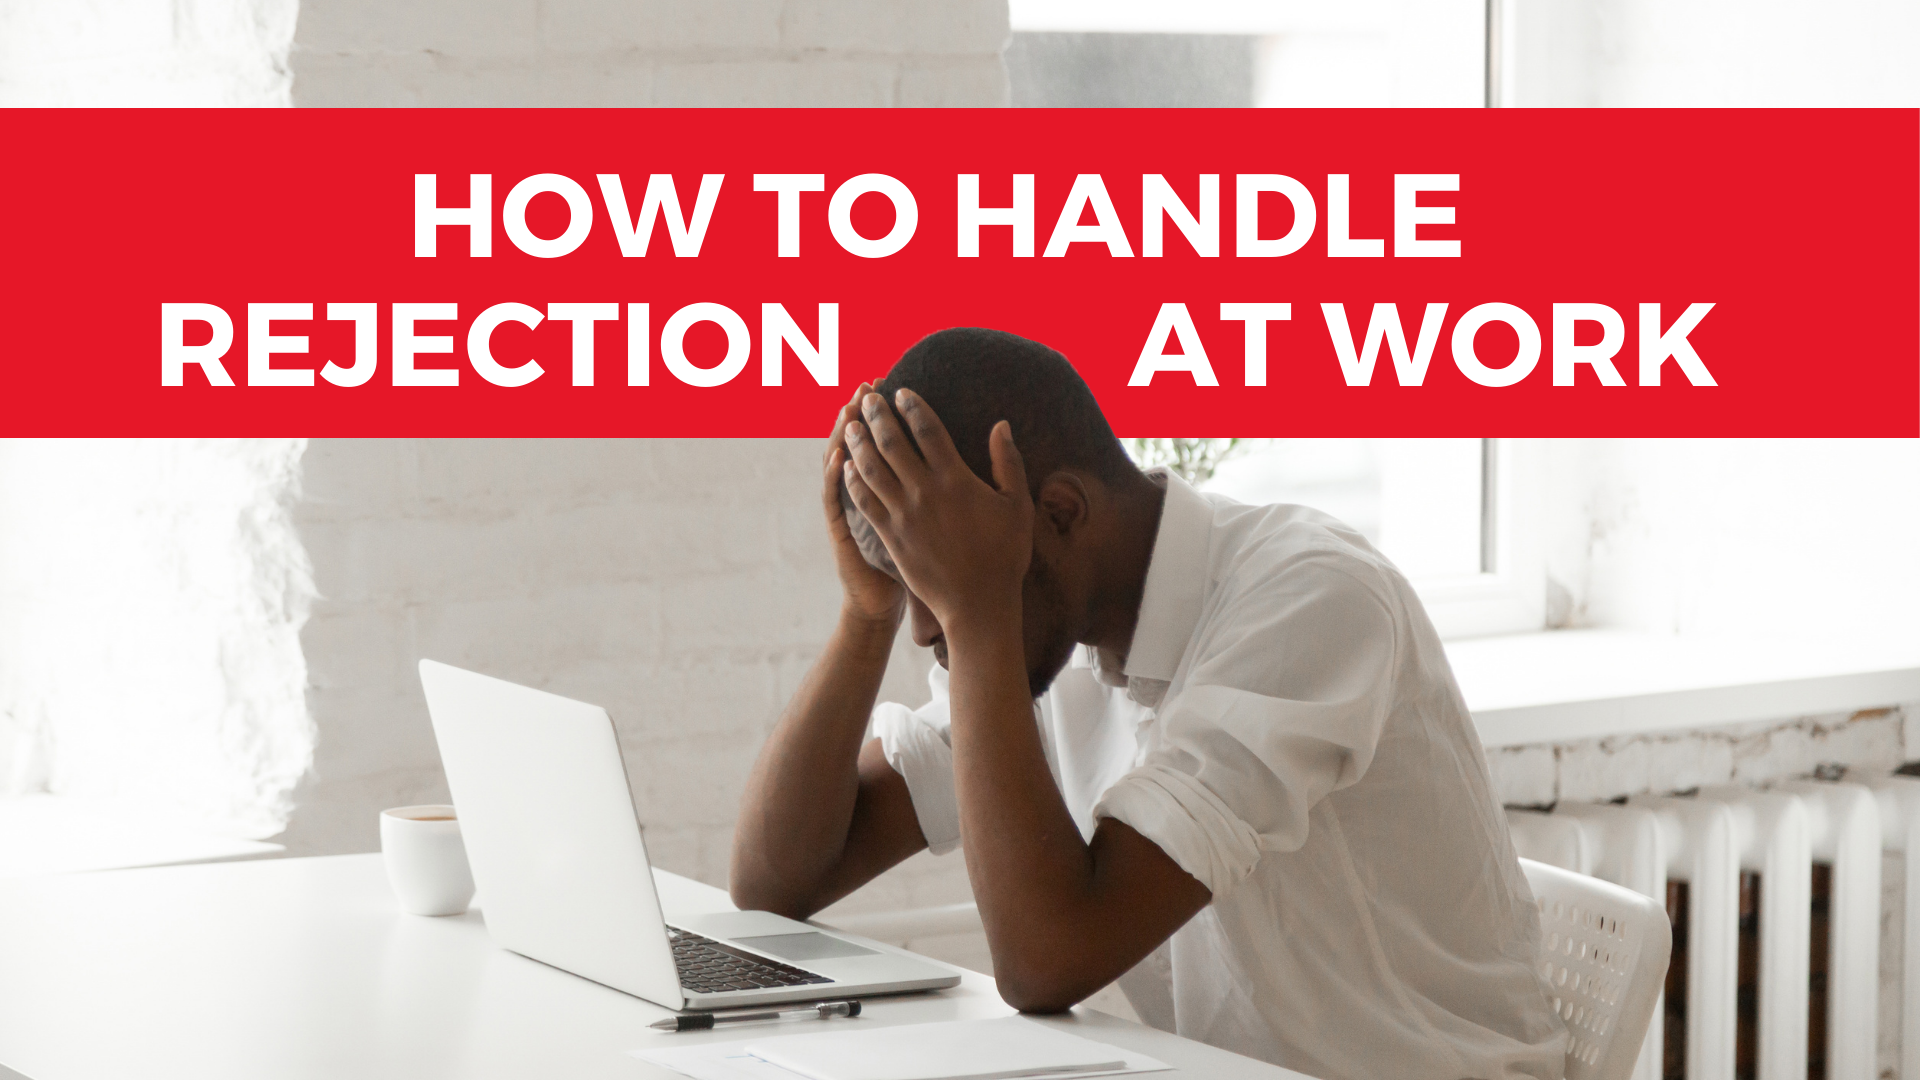 handle rejection, rejection, rejection at work, how to handle rejection, how to handle rejection at work, deal with rejection, work rejection, dealing with rejection at work, coping with rejection, how to cope with rejection at work